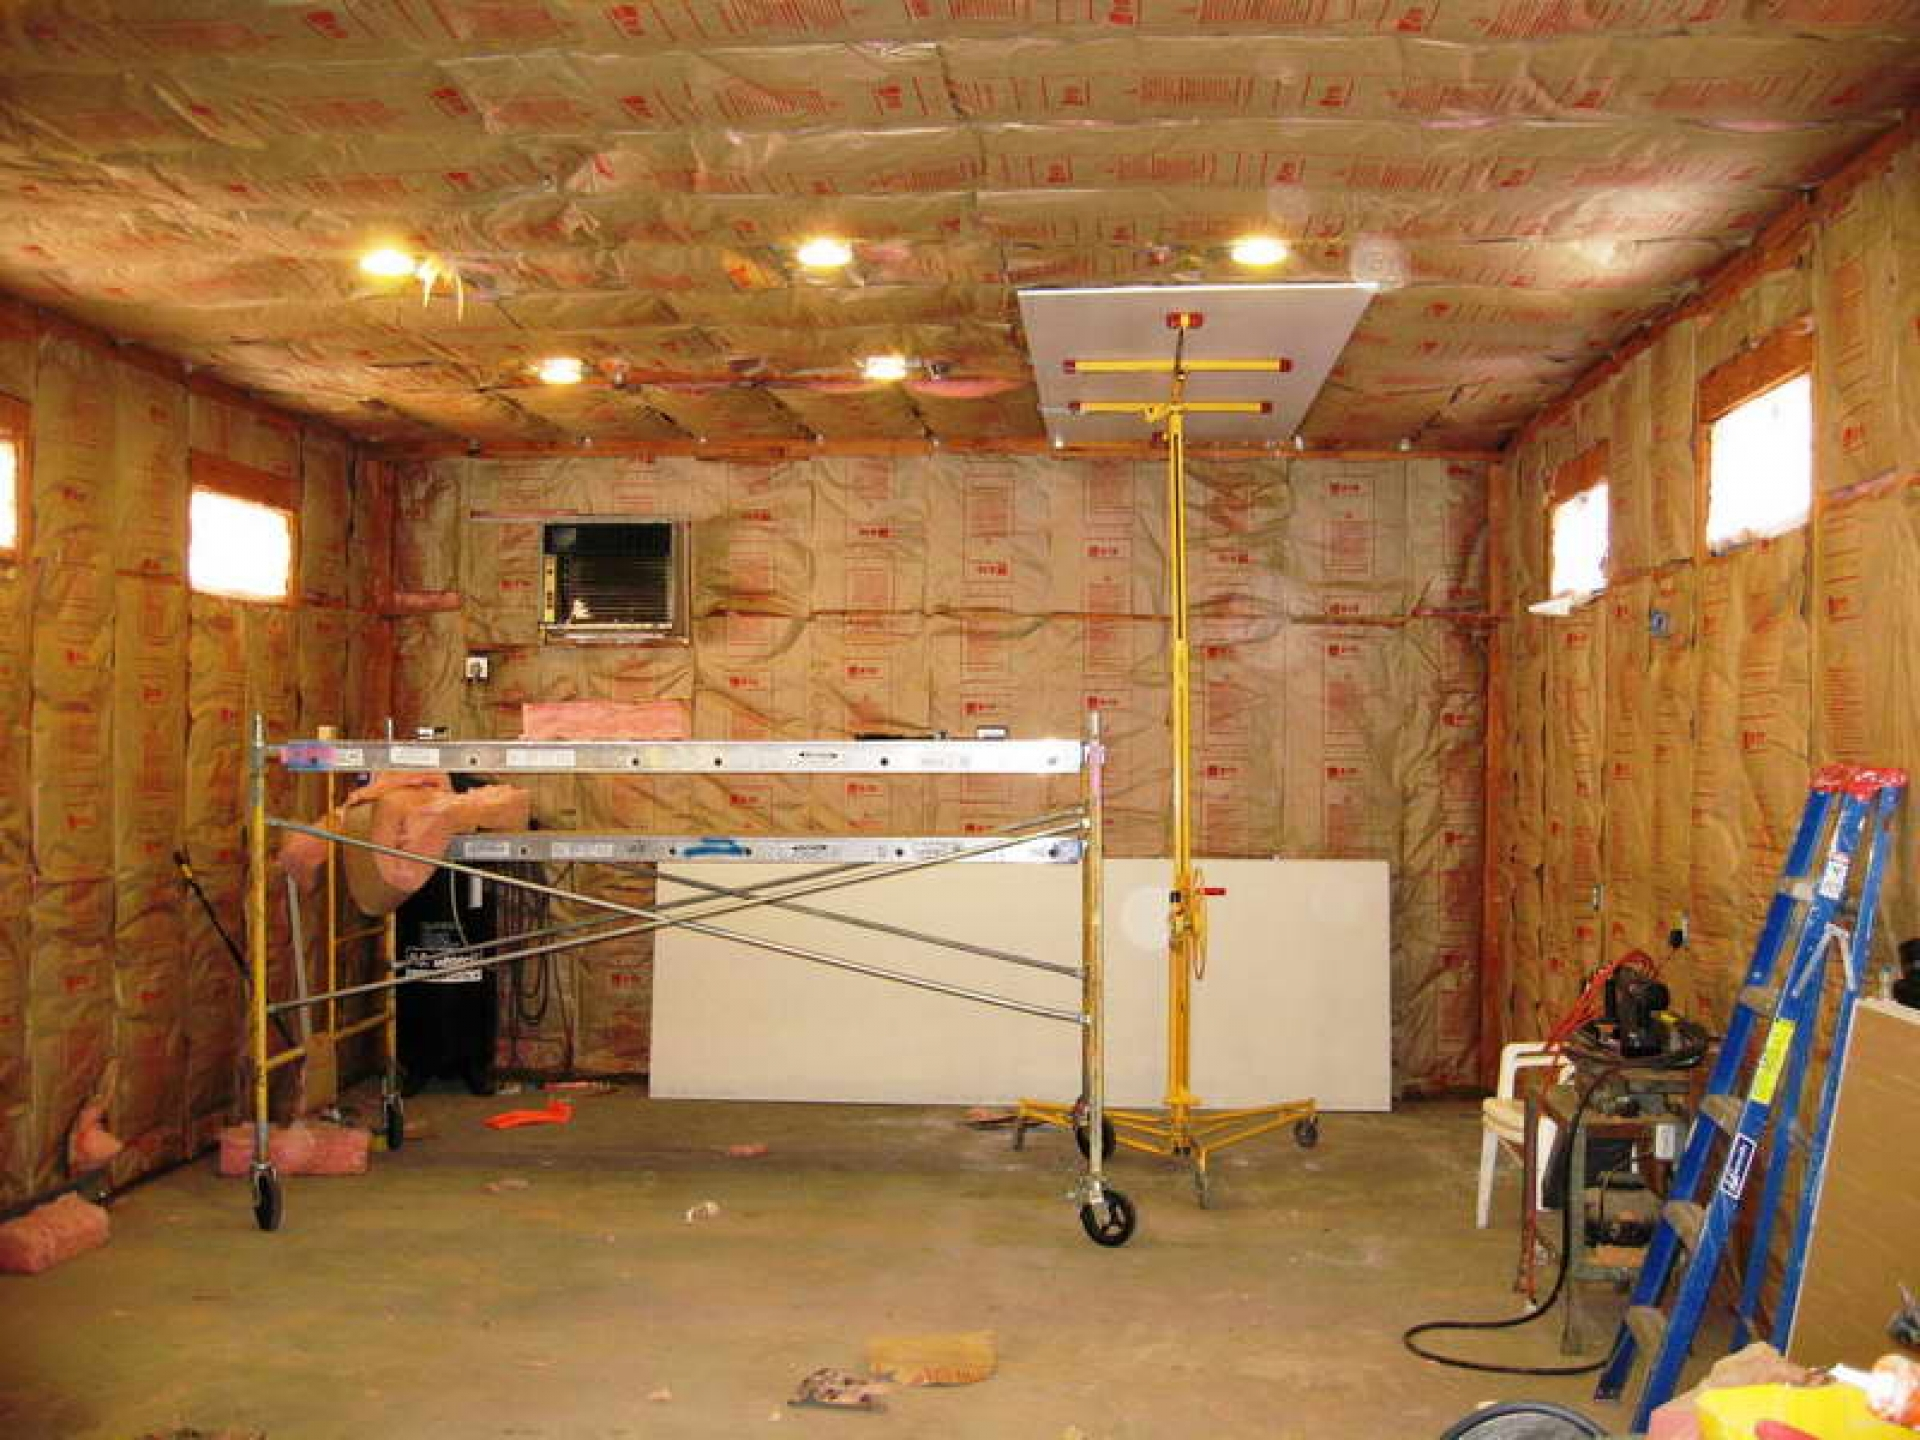 100 Insulating A Garage Ceiling Insulating A Garage Floor in dimensions 1920 X 1440